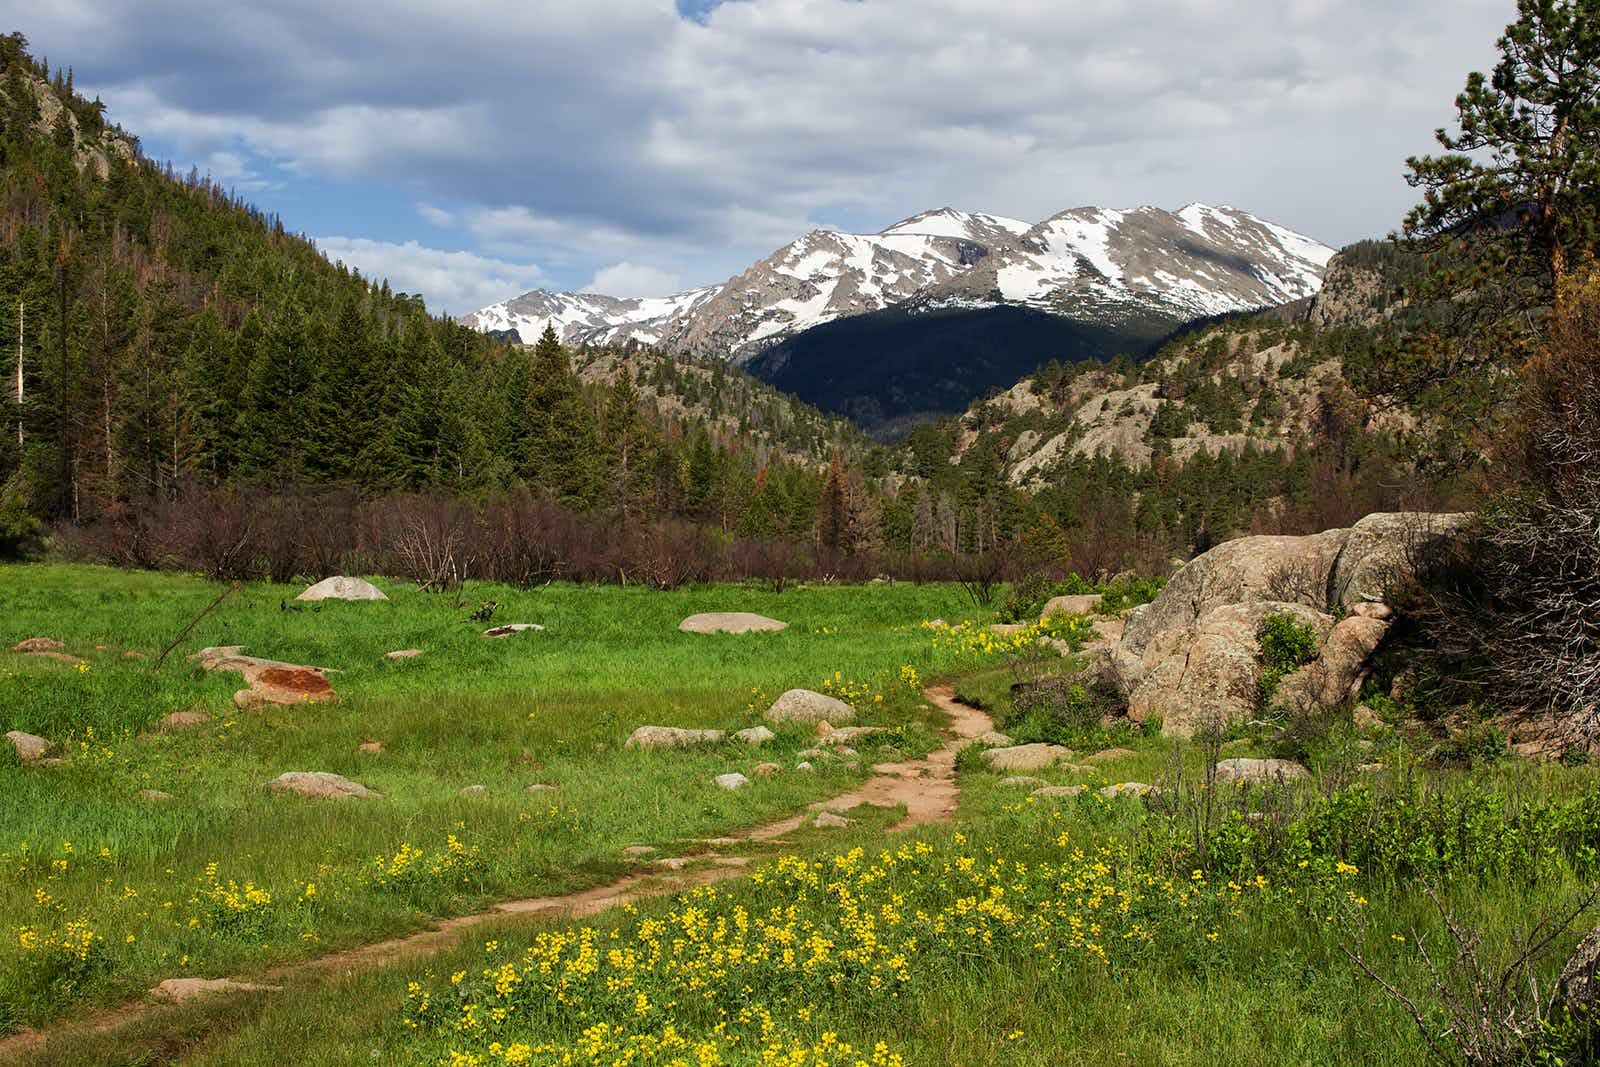 The cub lake trail starts in Morraine Park and winds through the meadows and hills of Rocky Mountain National Park